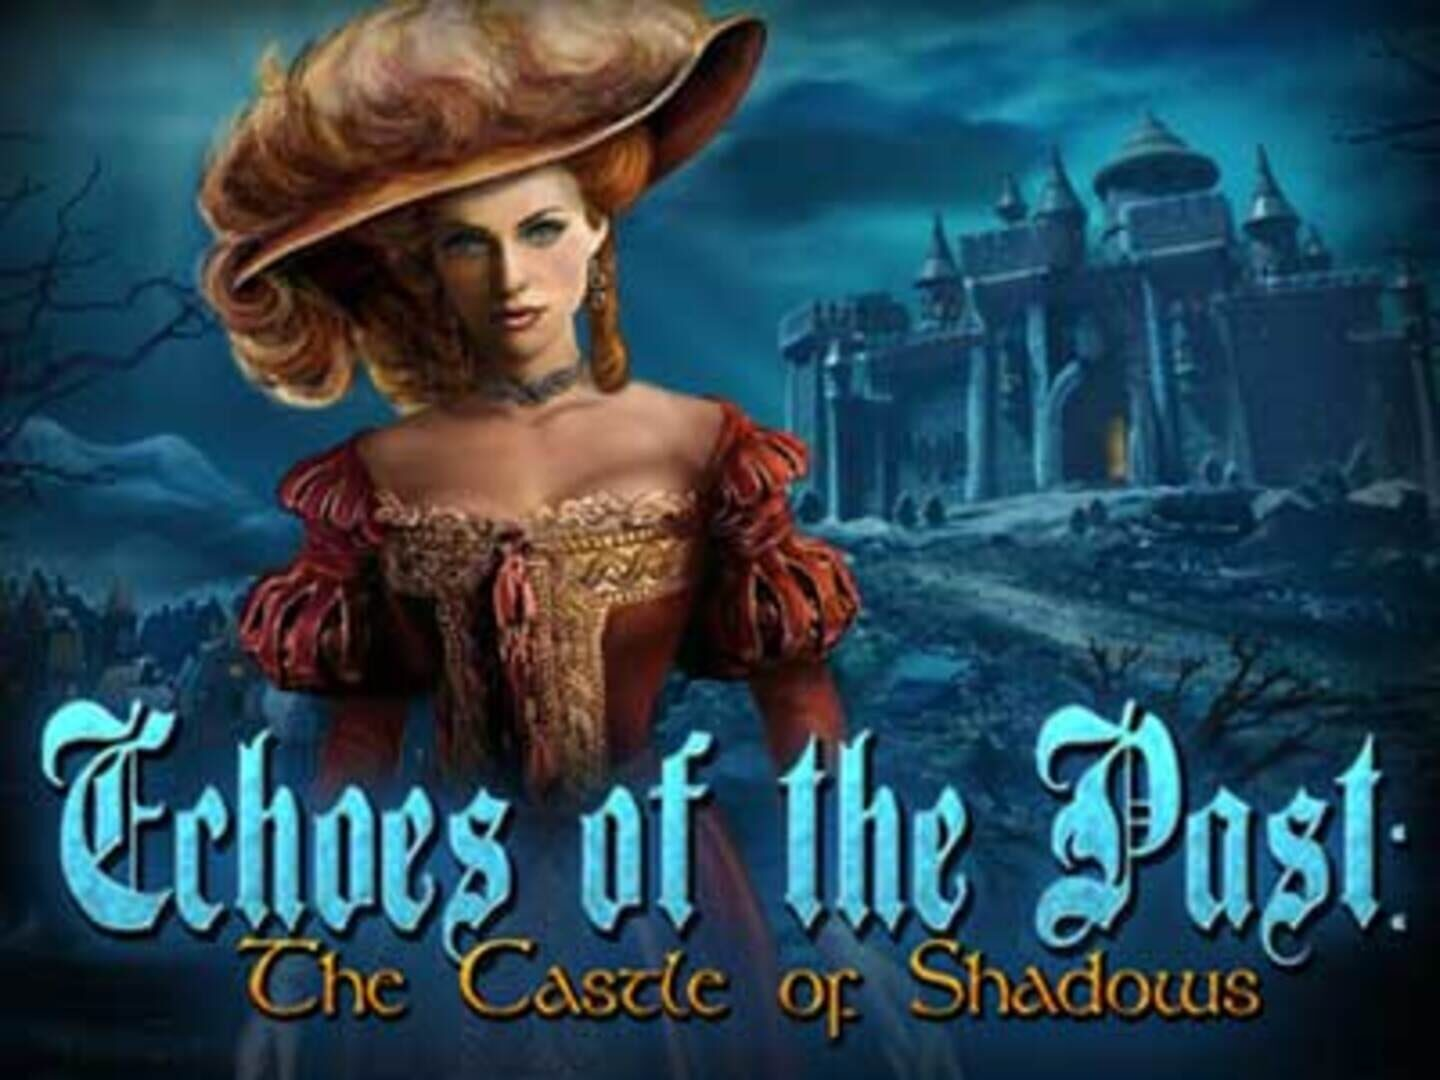 buy Echoes of the Past: The Castle of Shadows cd key for all platform